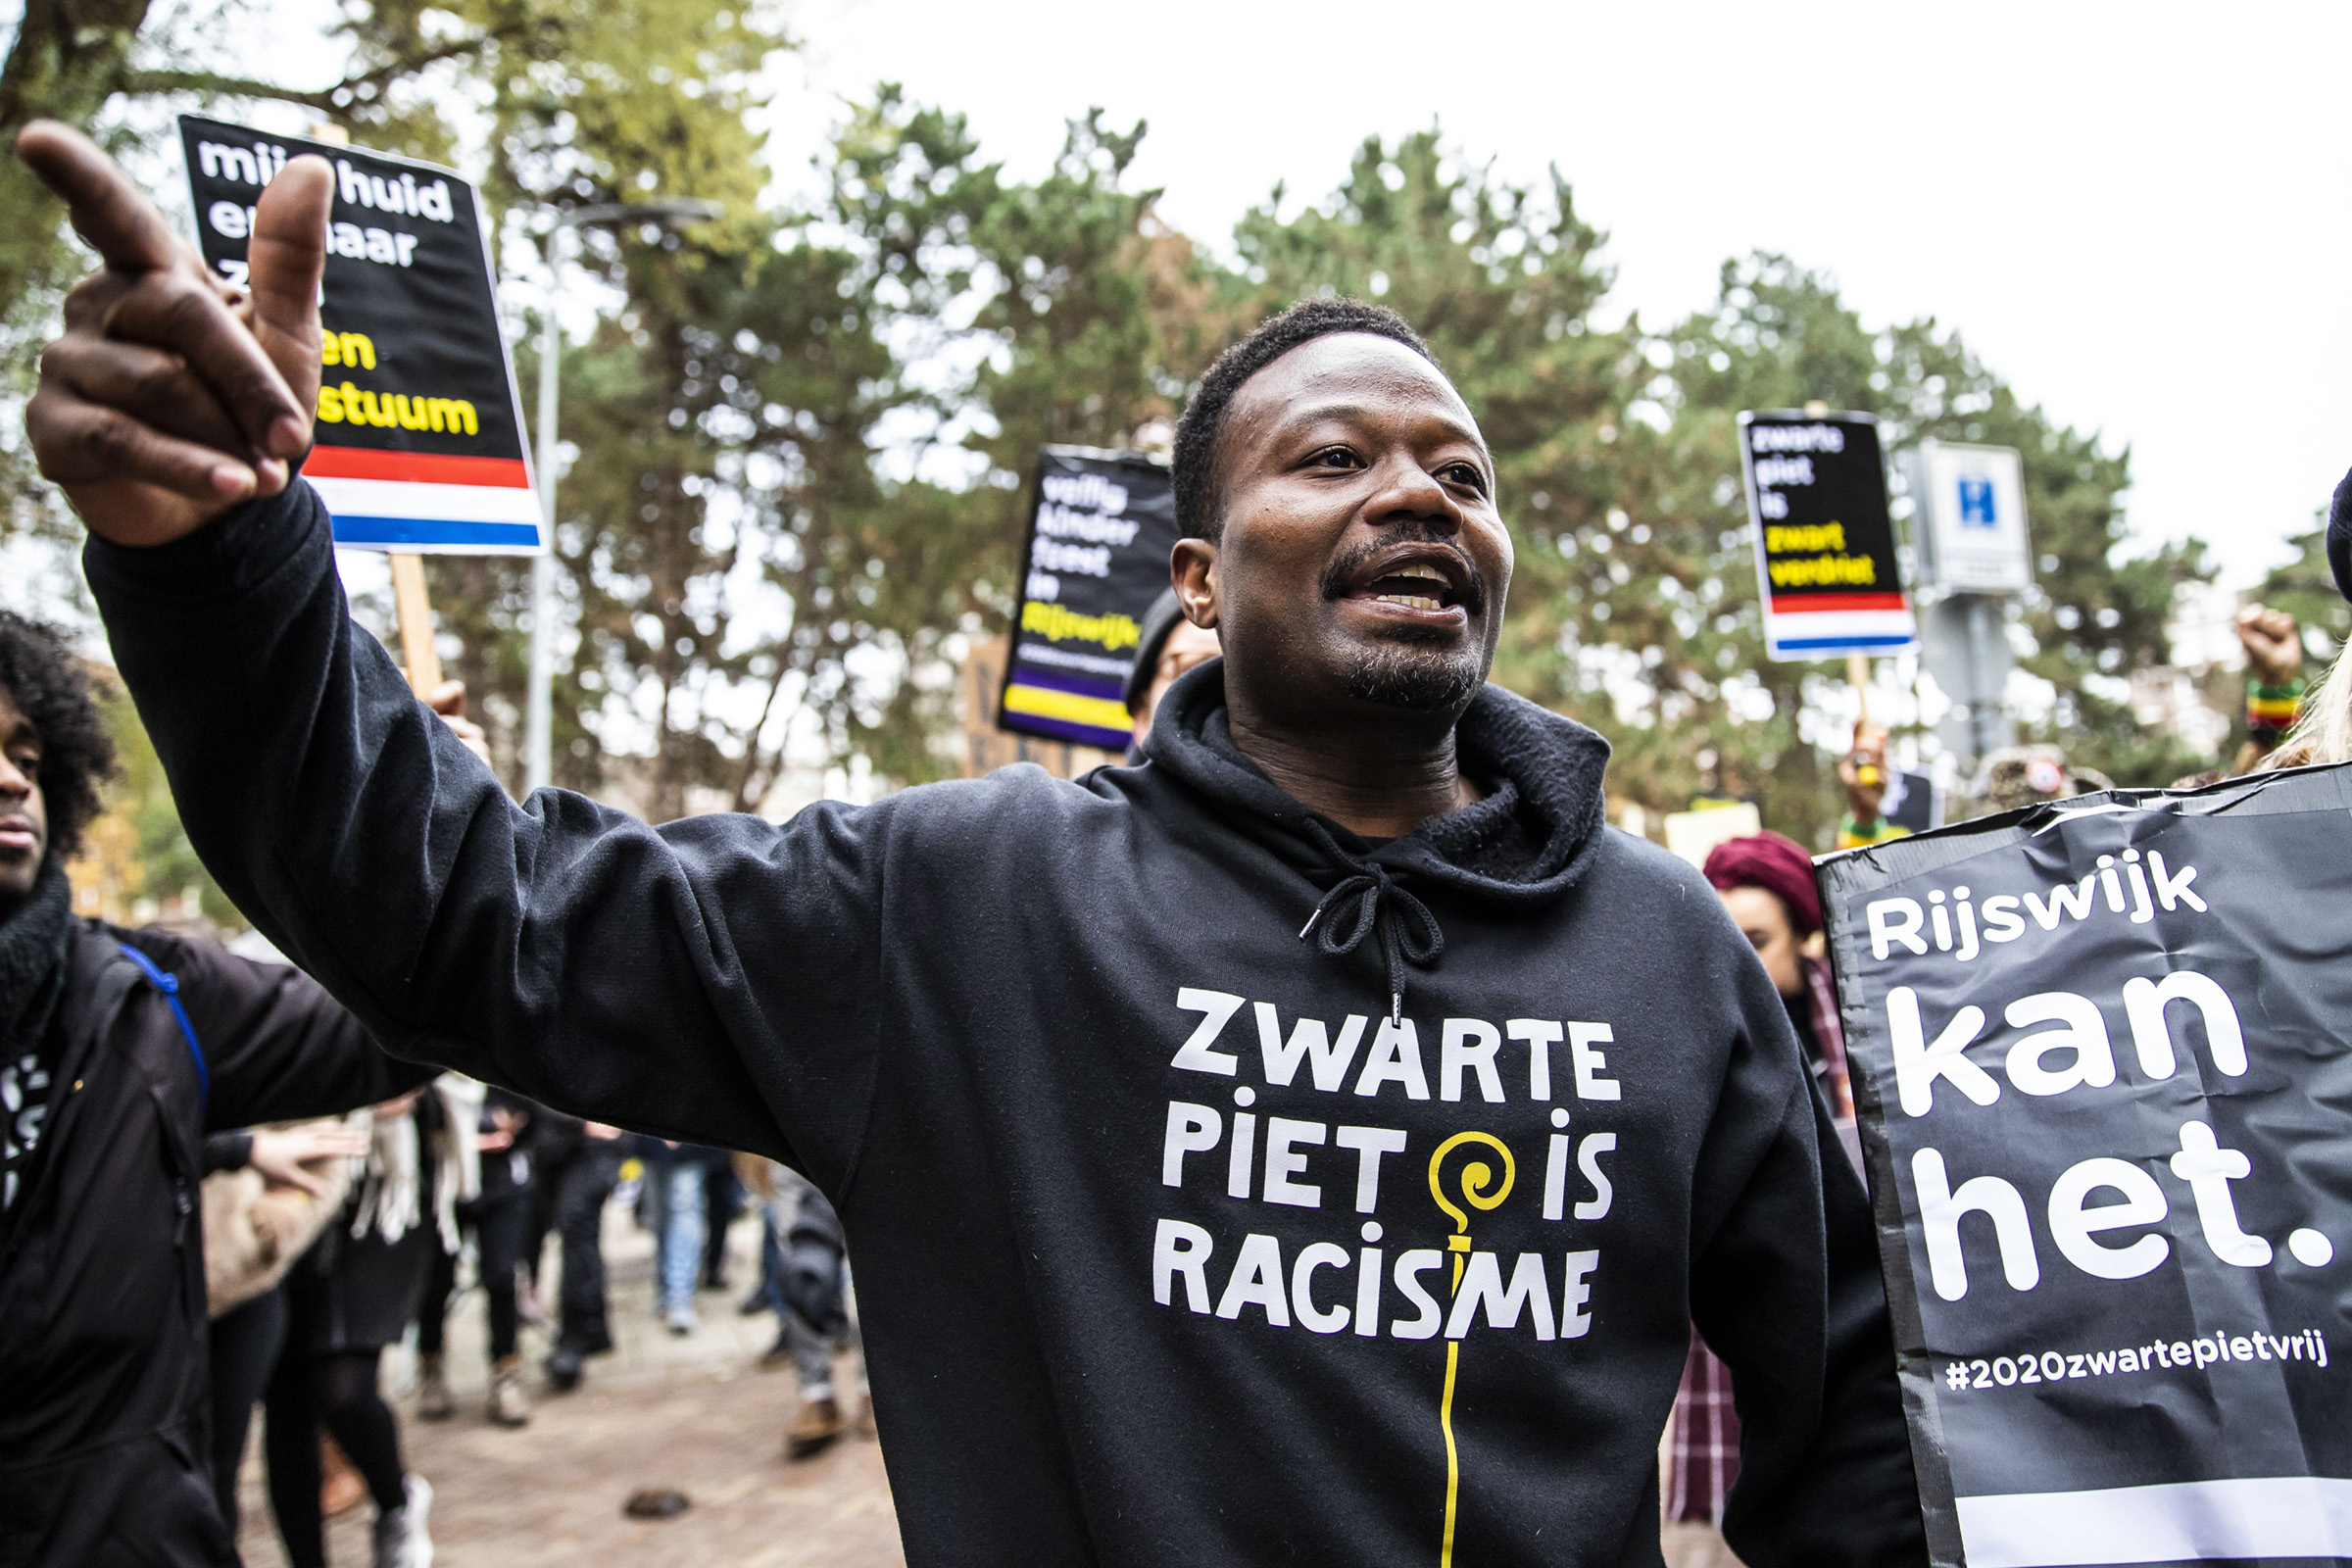 Dutch anti-discrimination activist Jerry Afriyie (C), leader of the 'Kick Out Zwarte Piet' (Kick Out Black Pete) movement, during a protest in Rijswijk, the Netherlands, on Nov. 23, 2019.